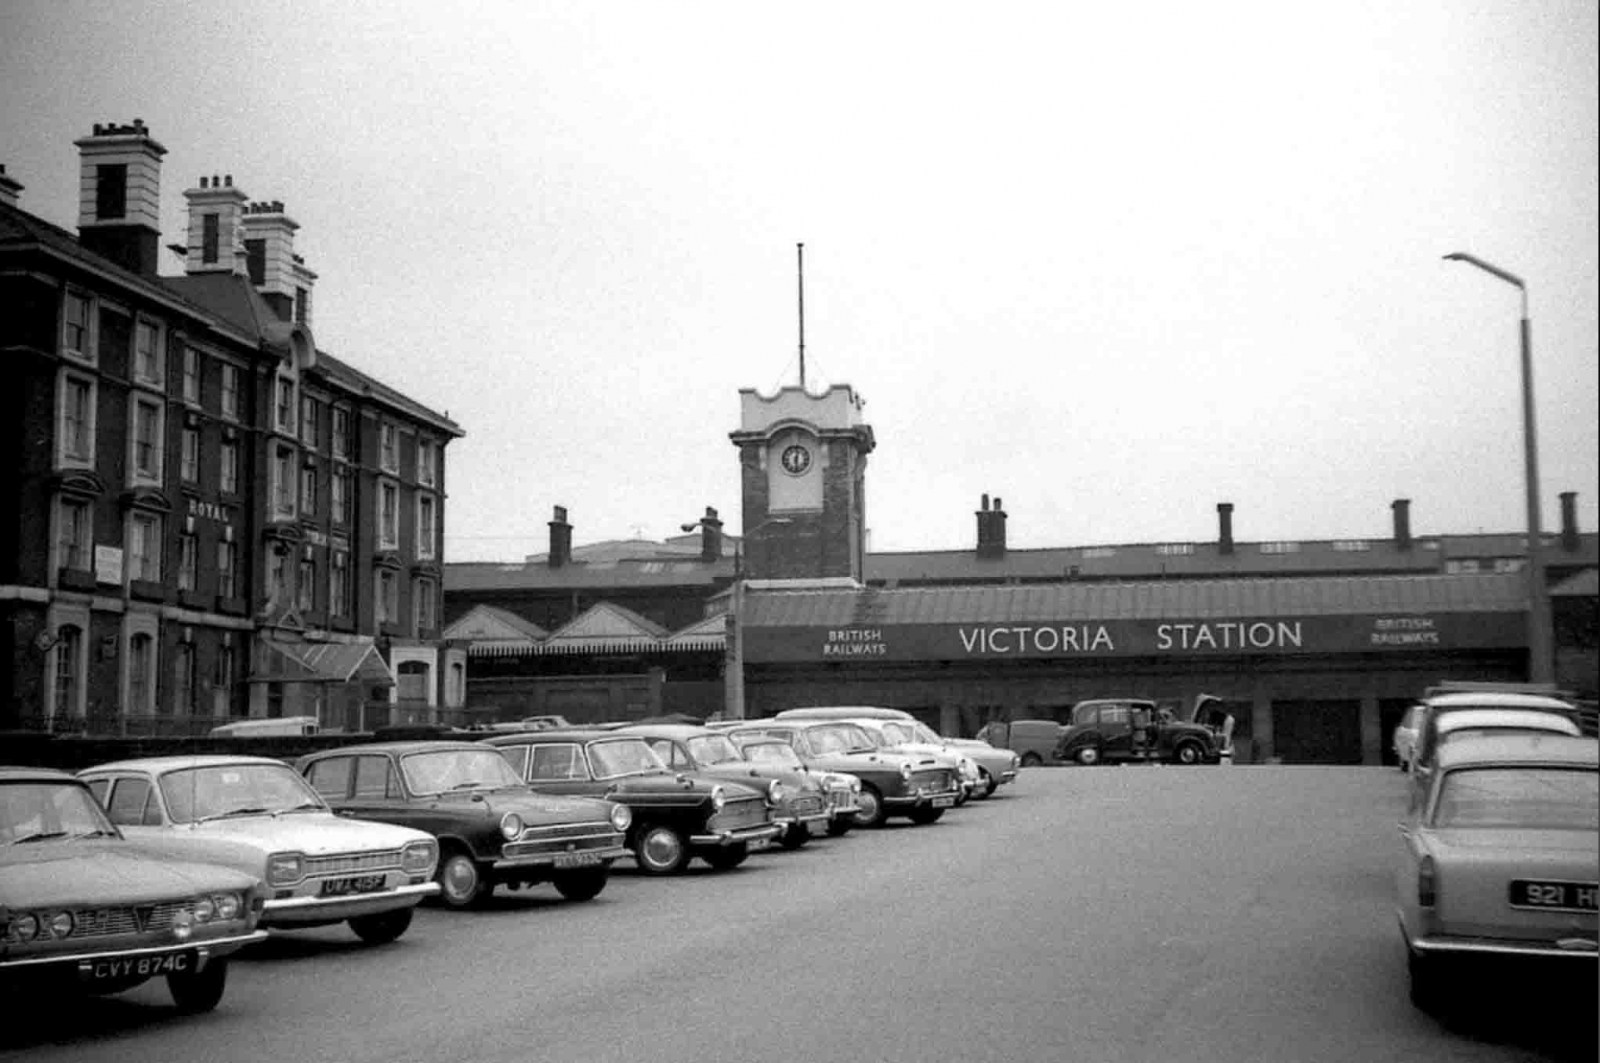 victoria train station sheffield.jpg